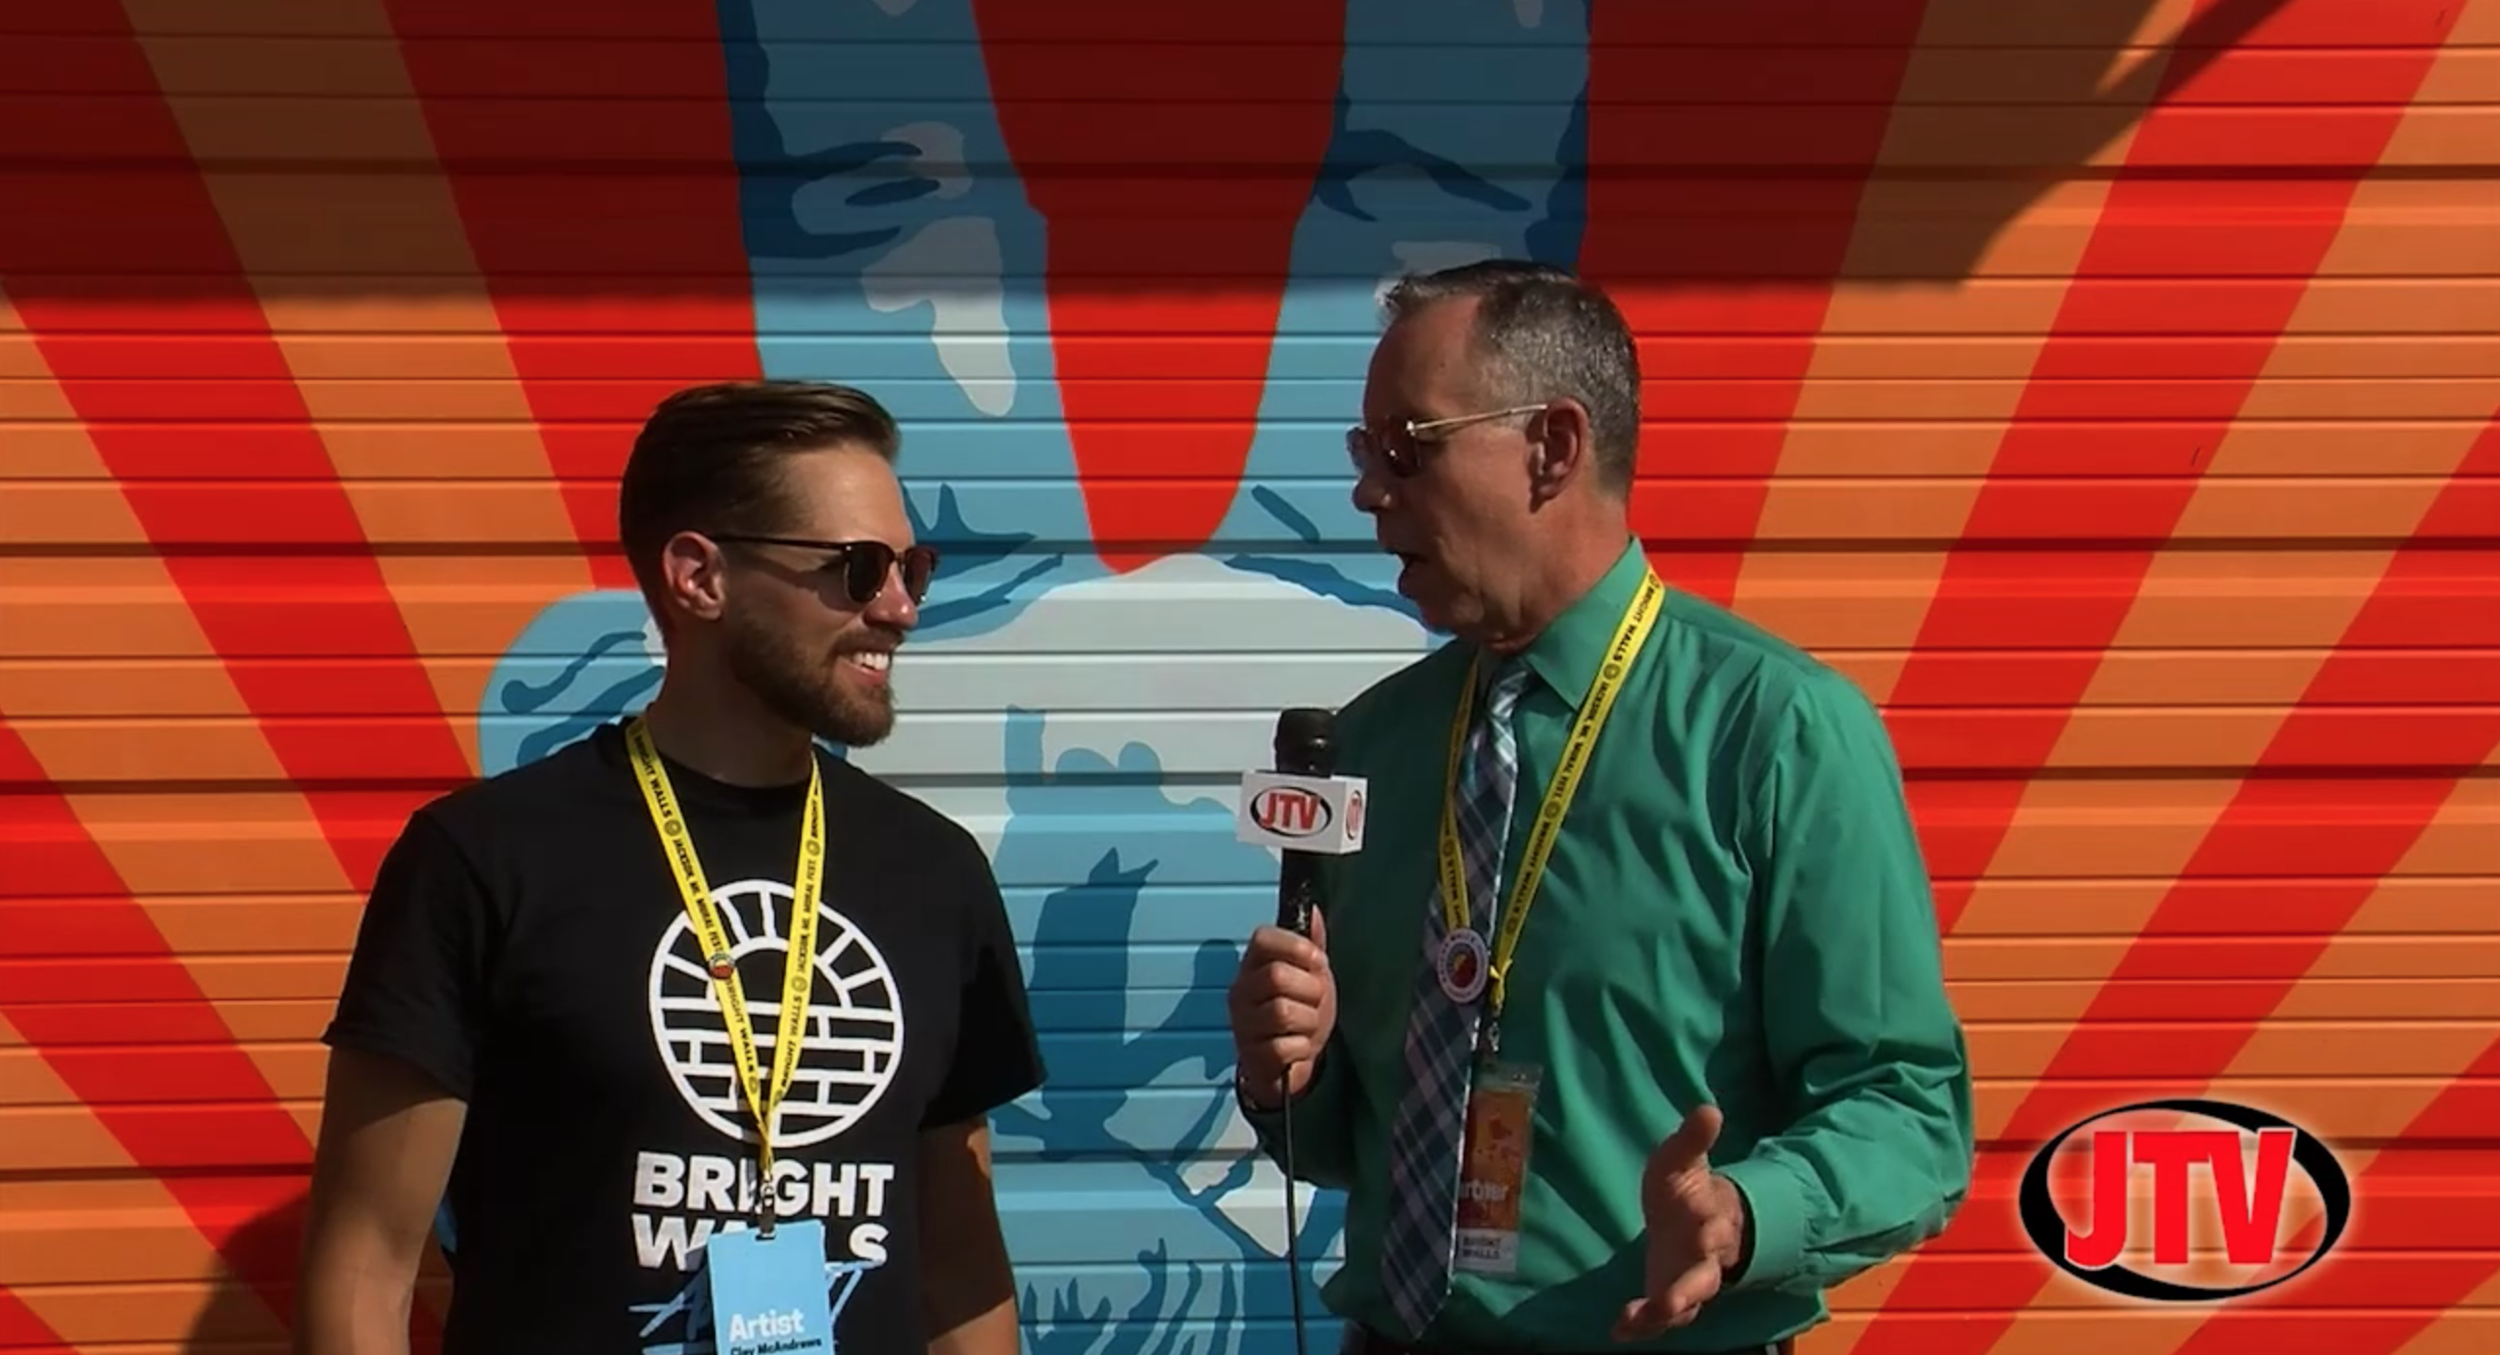 Bart Visits Bright WallsArtist & Event OrganizerClay McAndrews To Talk About Event Success - JTV Studios • Oct. 8, 2018